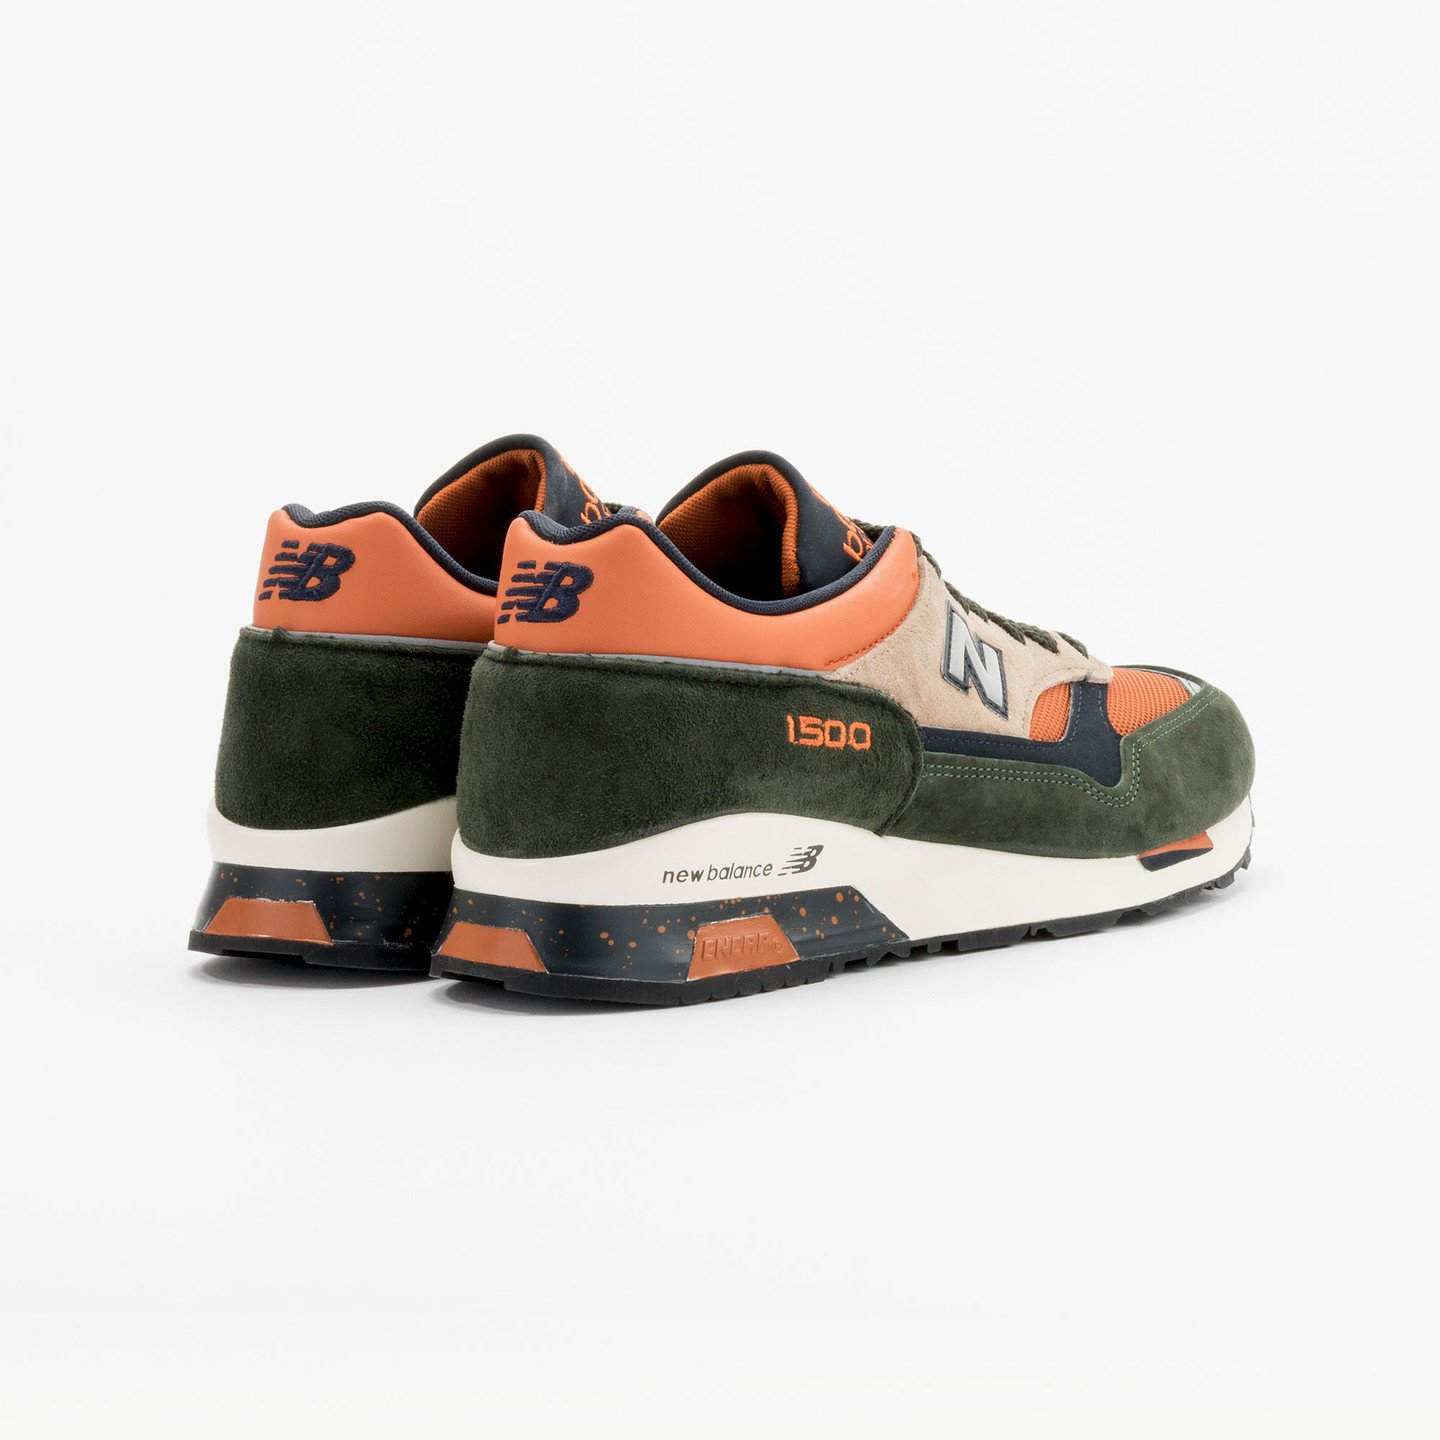 New Balance M1500 RO - Made in England Green / Orange M1500RO-44.5